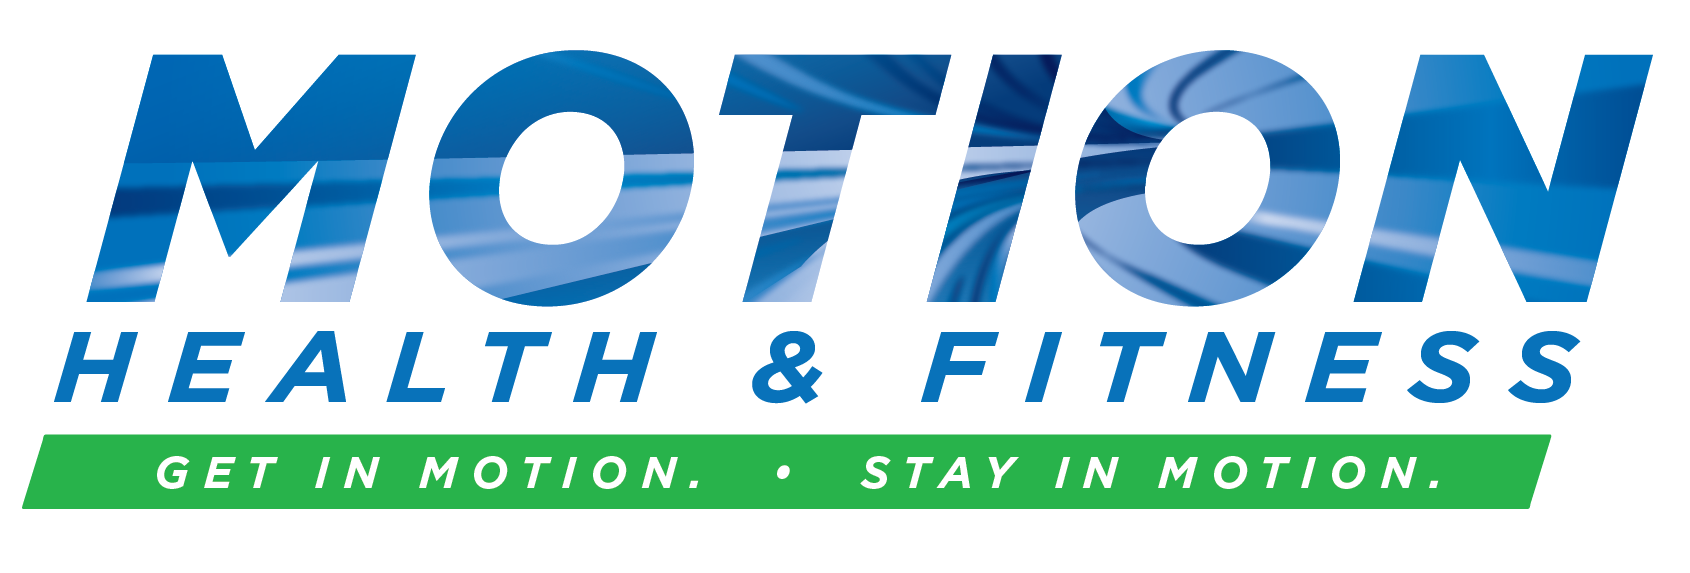 Motion Health & Fitness